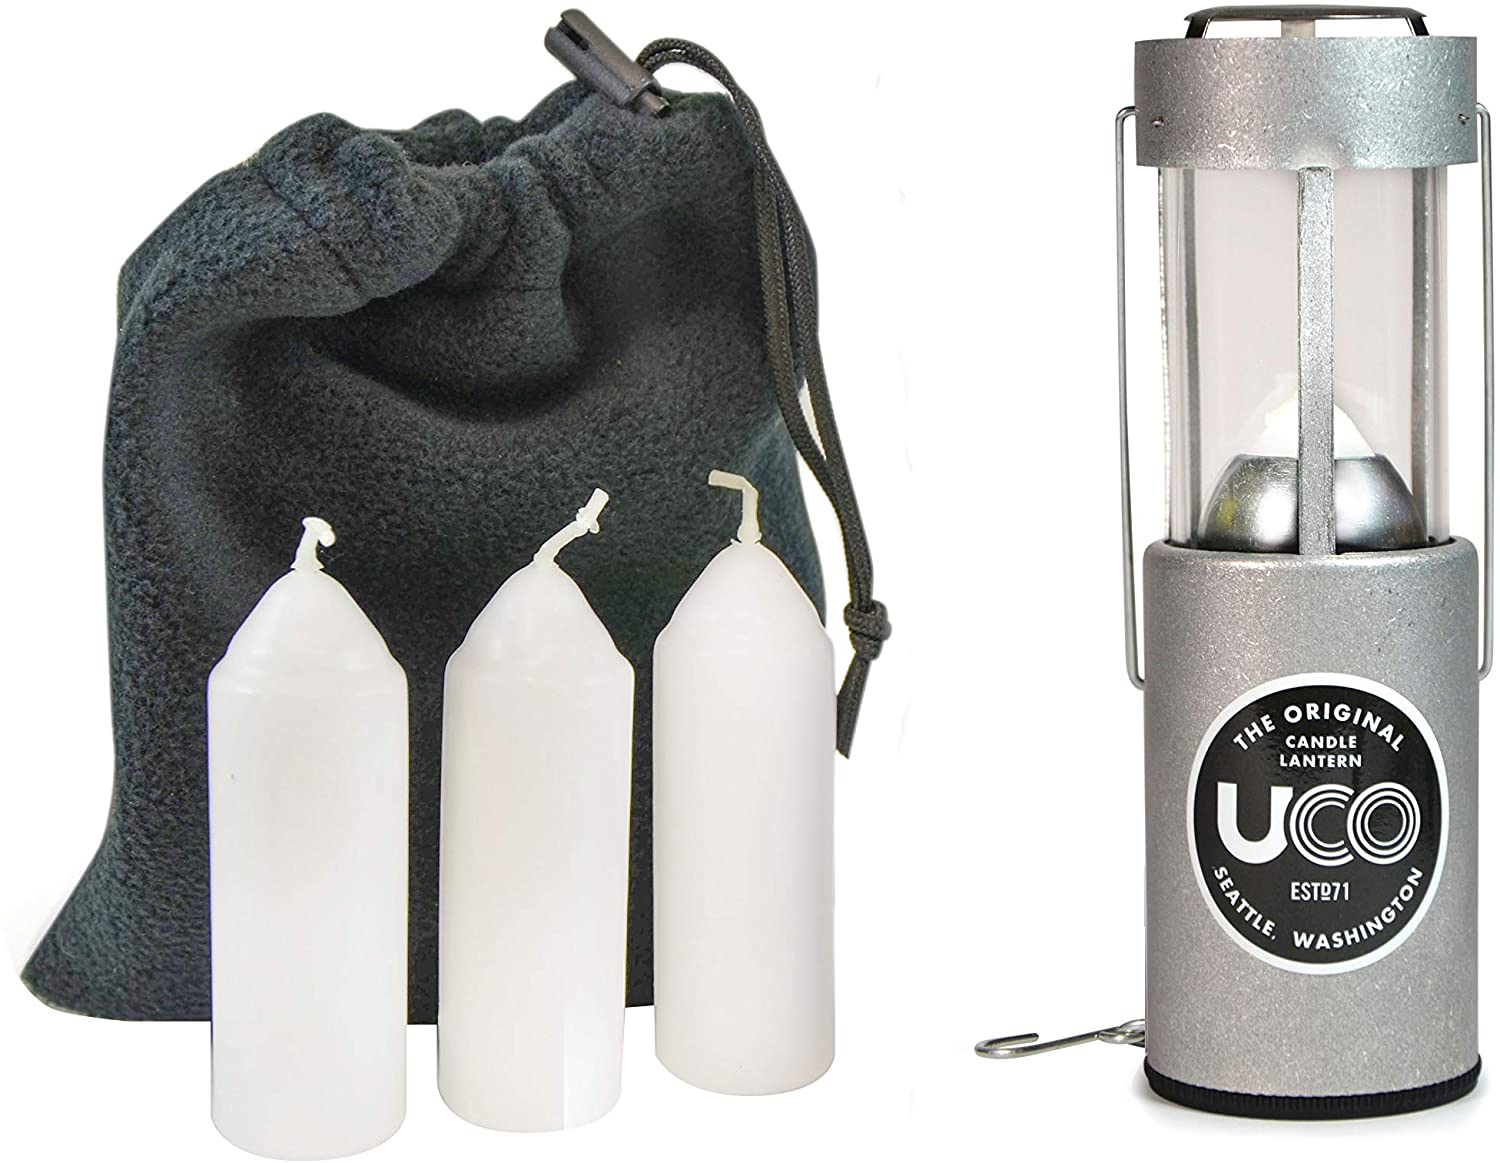 UCO Original Candle Lantern Kit with three extra candles.